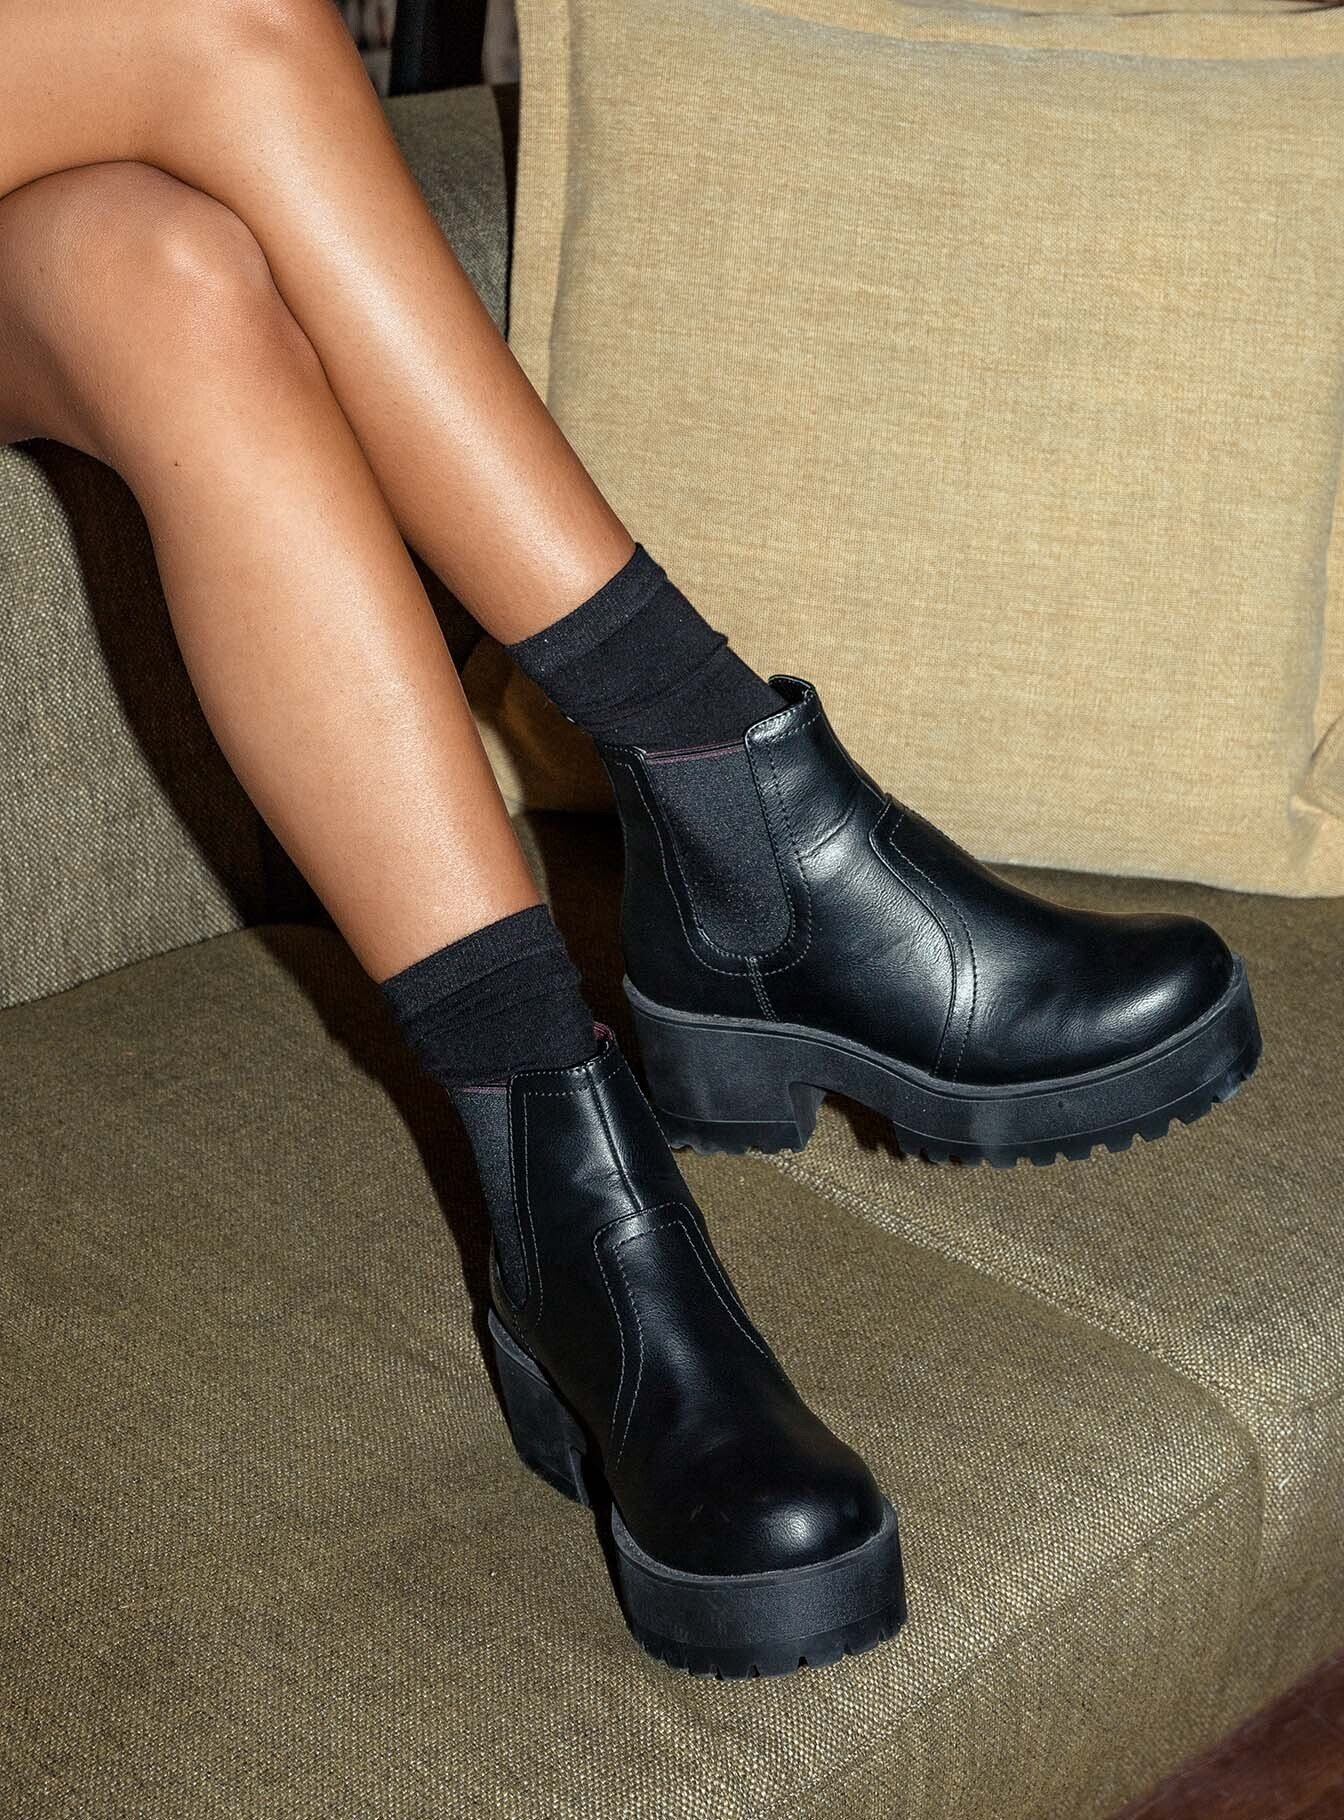 Boots (Side A)